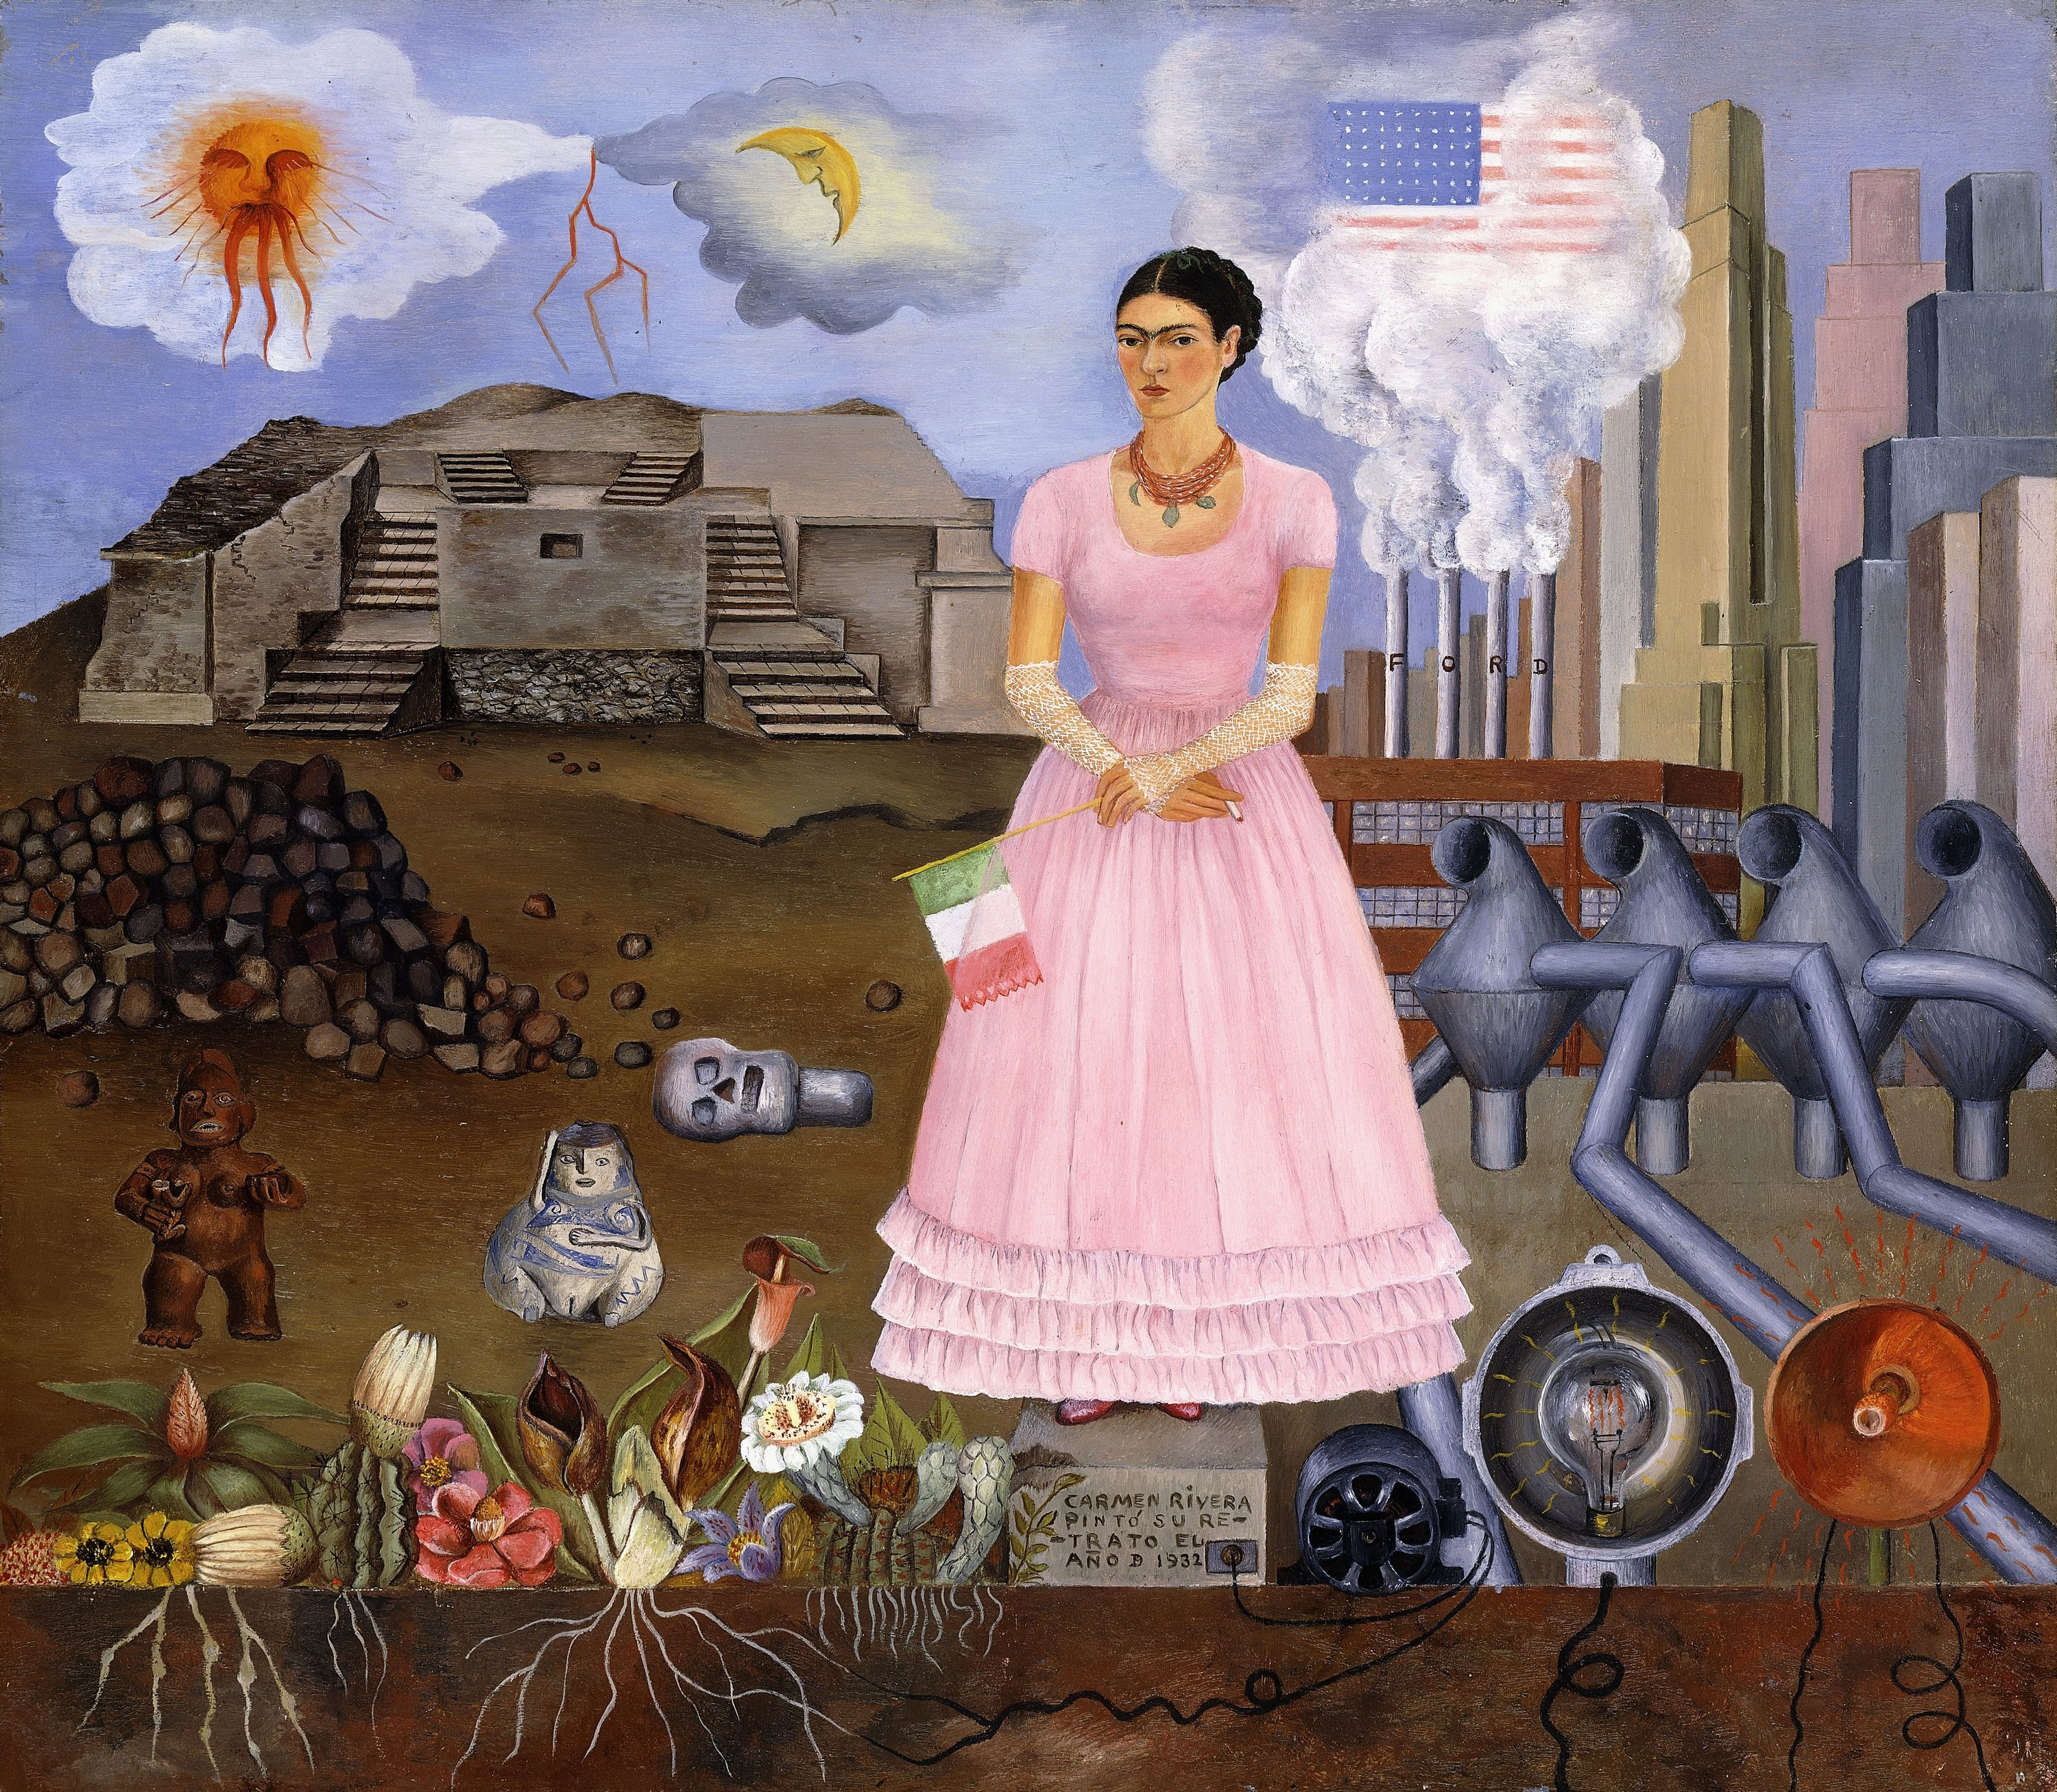 CH991362 Self Portrait on the Border between Mexico and the United States of America, 1932 (oil on tin) by Kahlo, Frida (1907-54); 31x35 cm; Private Collection; (add.info.: Self Portrait on the Border between Mexico and the United States of America; Autorretrato en la Frontera entre Mexico y los Estados Unidos. Frida Kahlo (1910-1954). Oil on tin. Signed and dated 1932. 31 x 35cm.); Photo © Christie's Images; Mexican,  in copyright